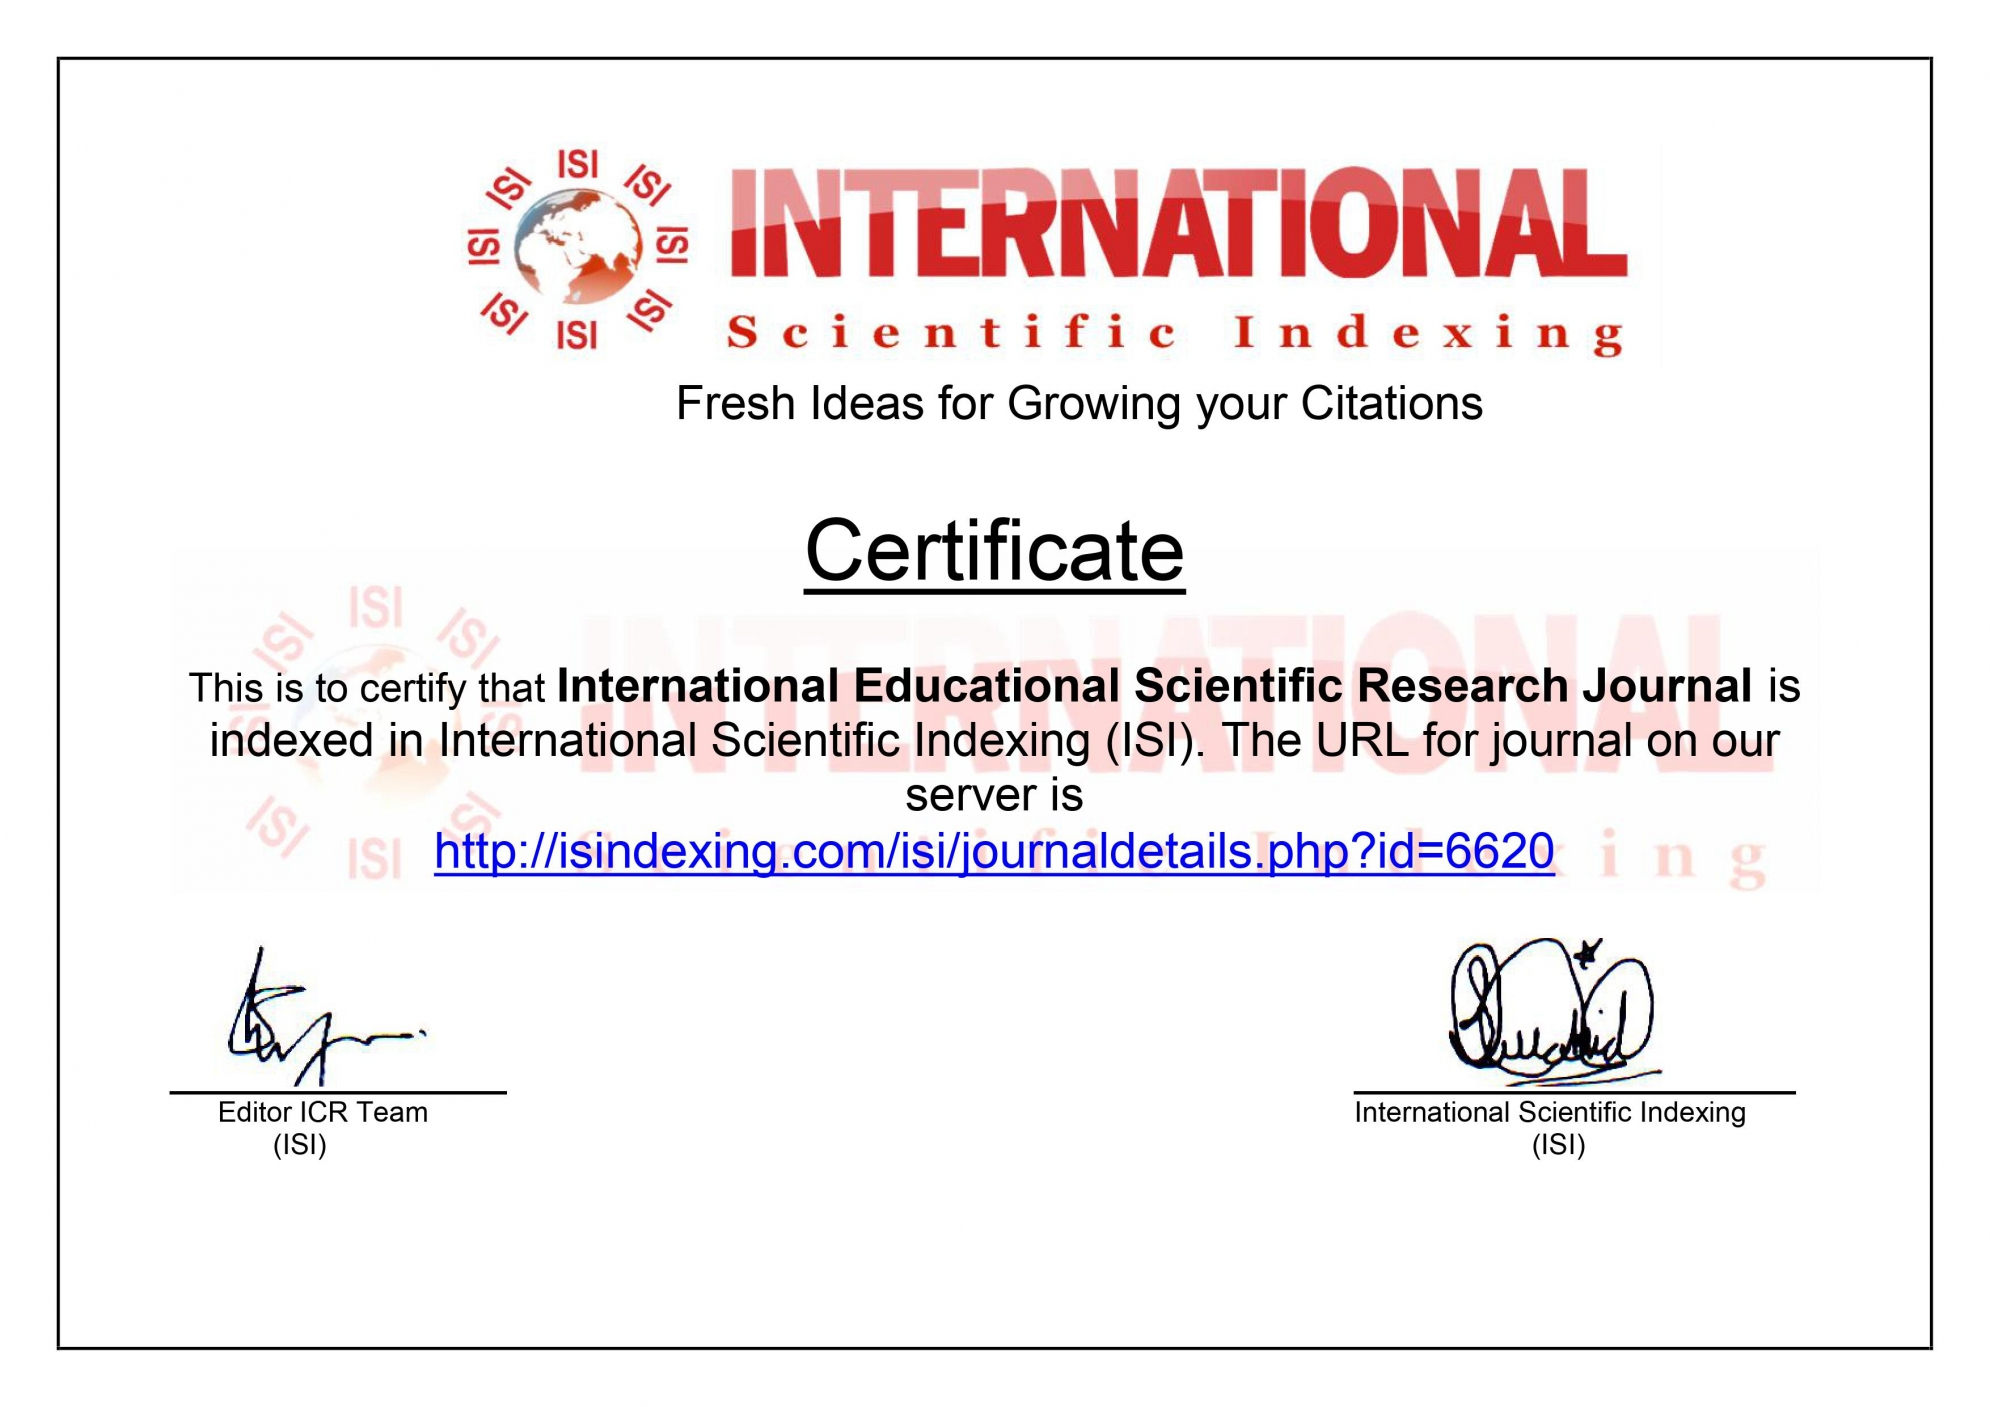 International Scientific Indexing (ISI)